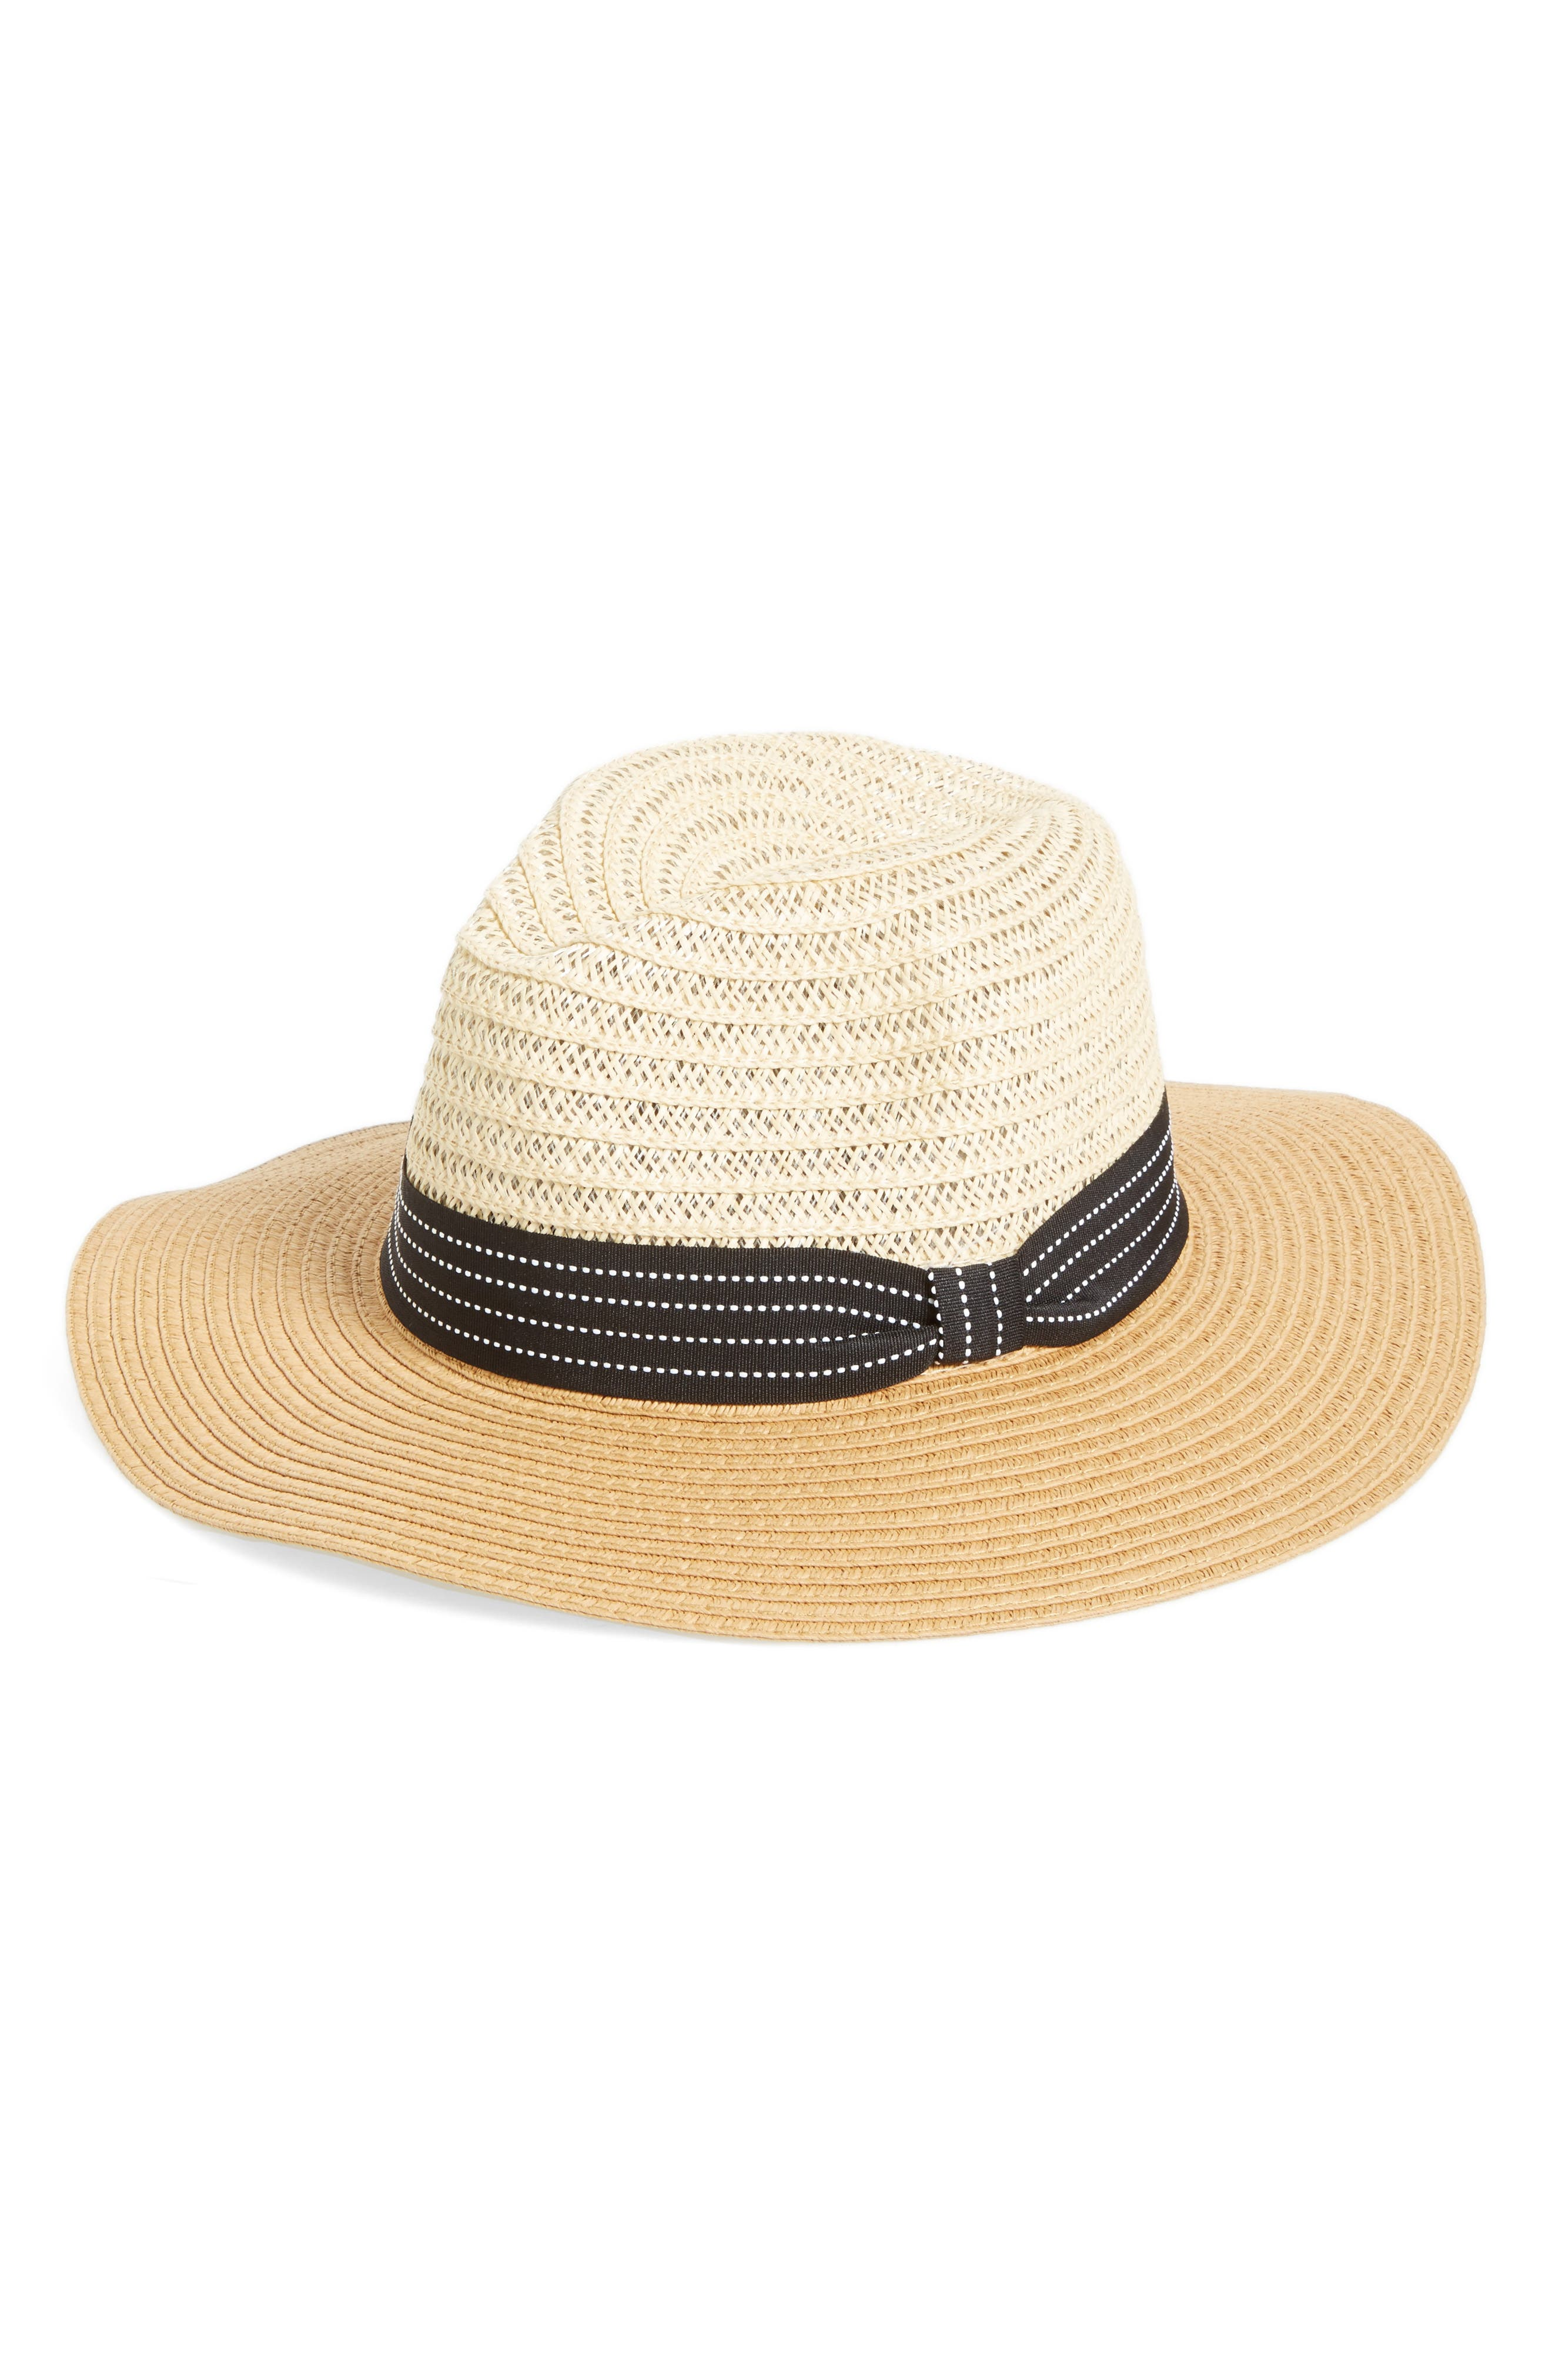 Alternate Image 1 Selected - BP. Two Tone Straw Panama Hat